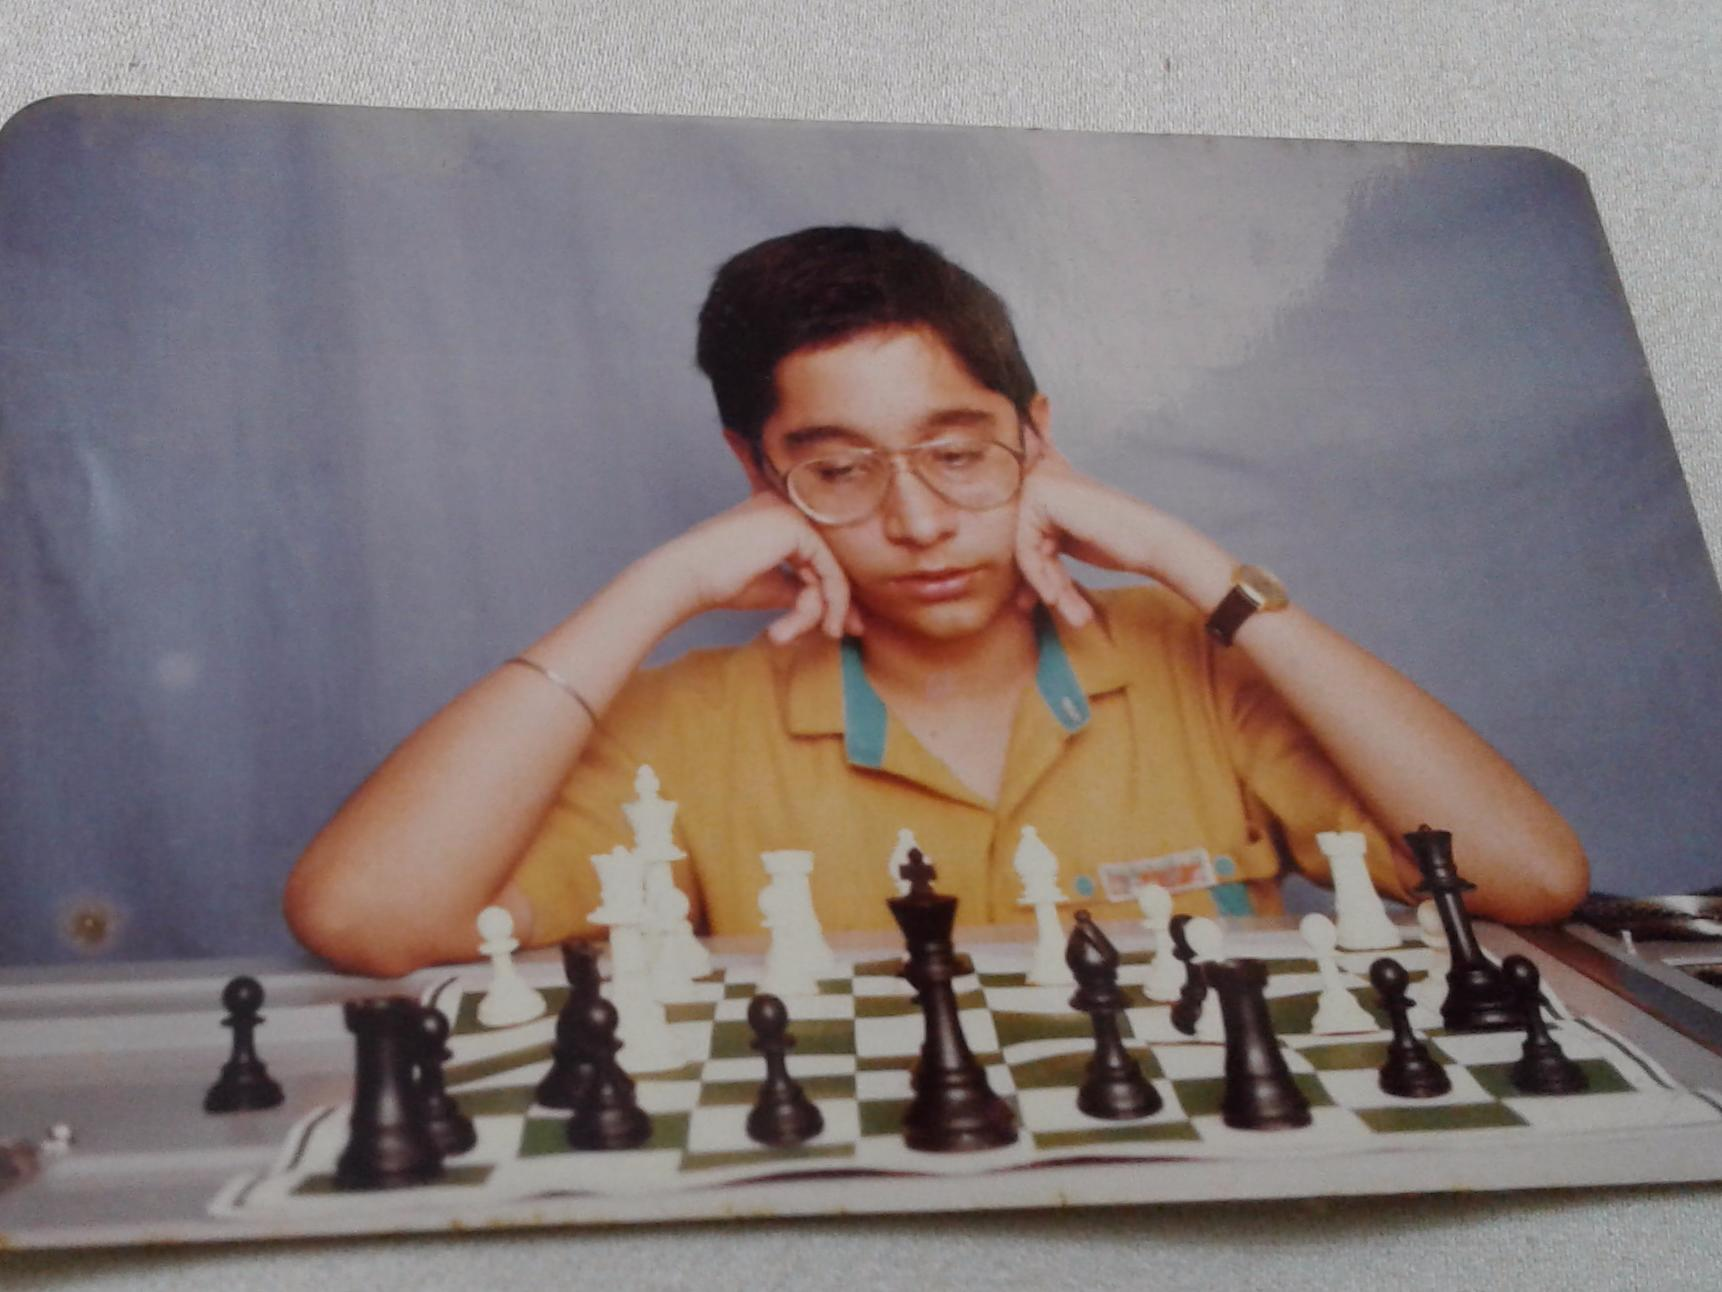 How a former teen chess genius wound up leading a hot Valley startup